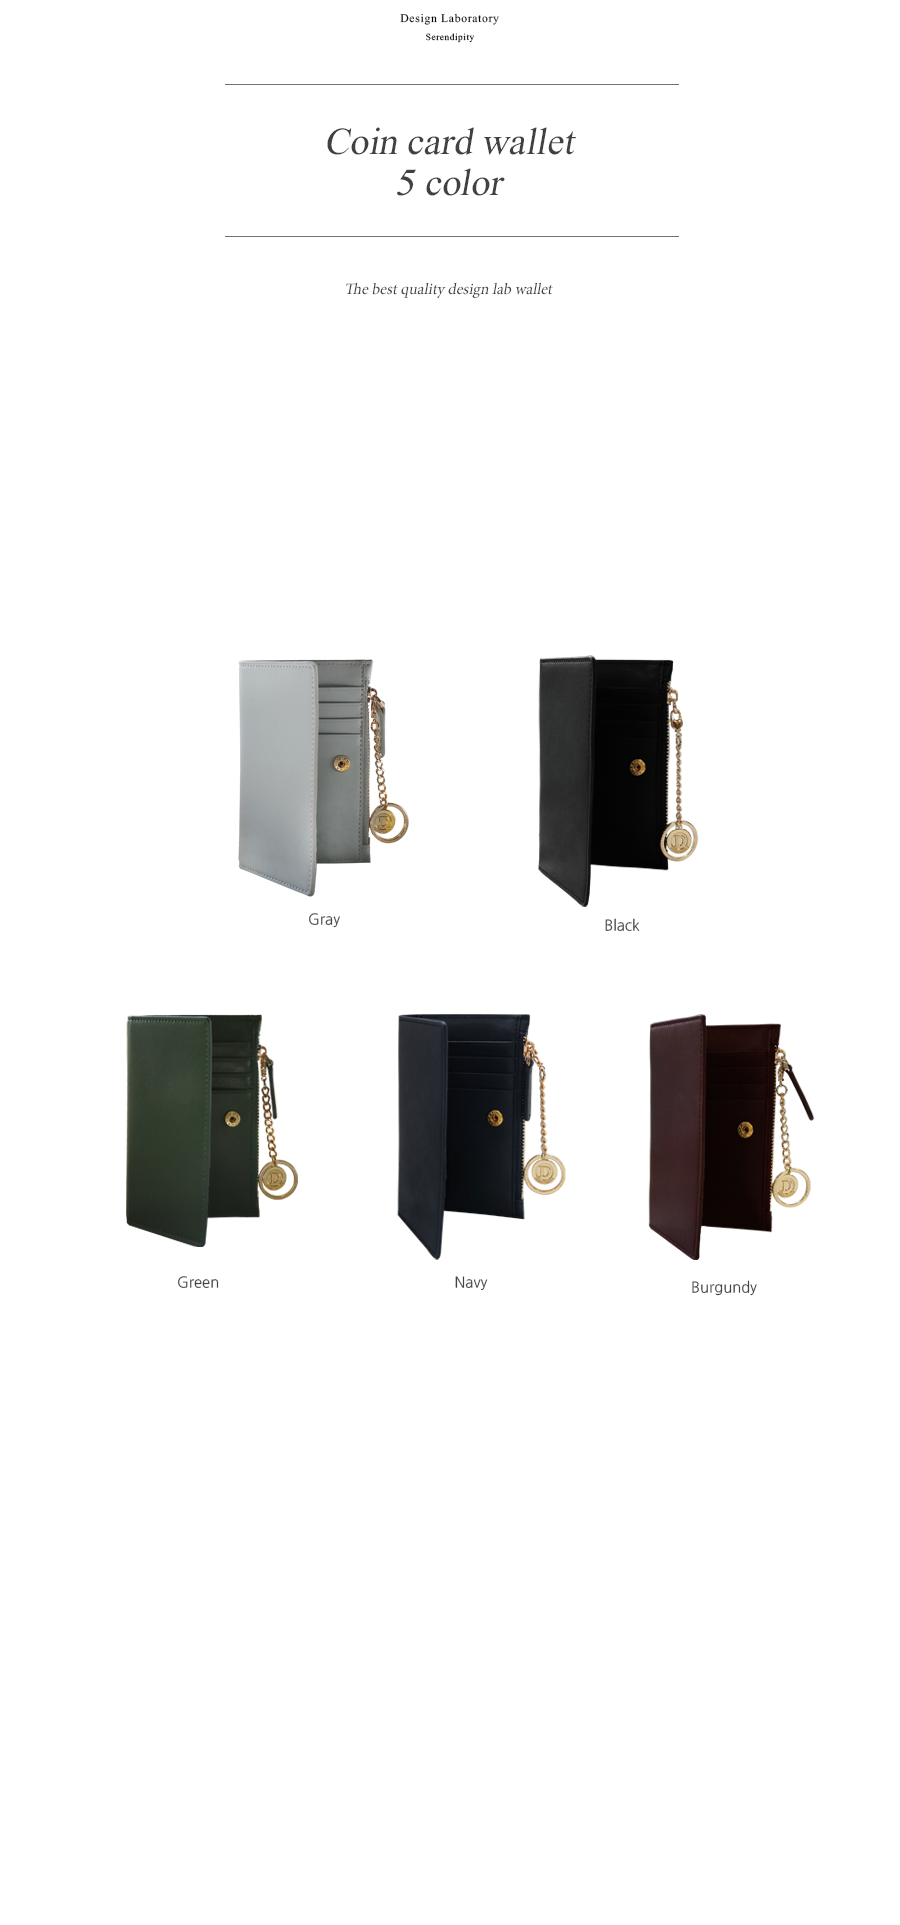 dlab Constellation keyring wallet